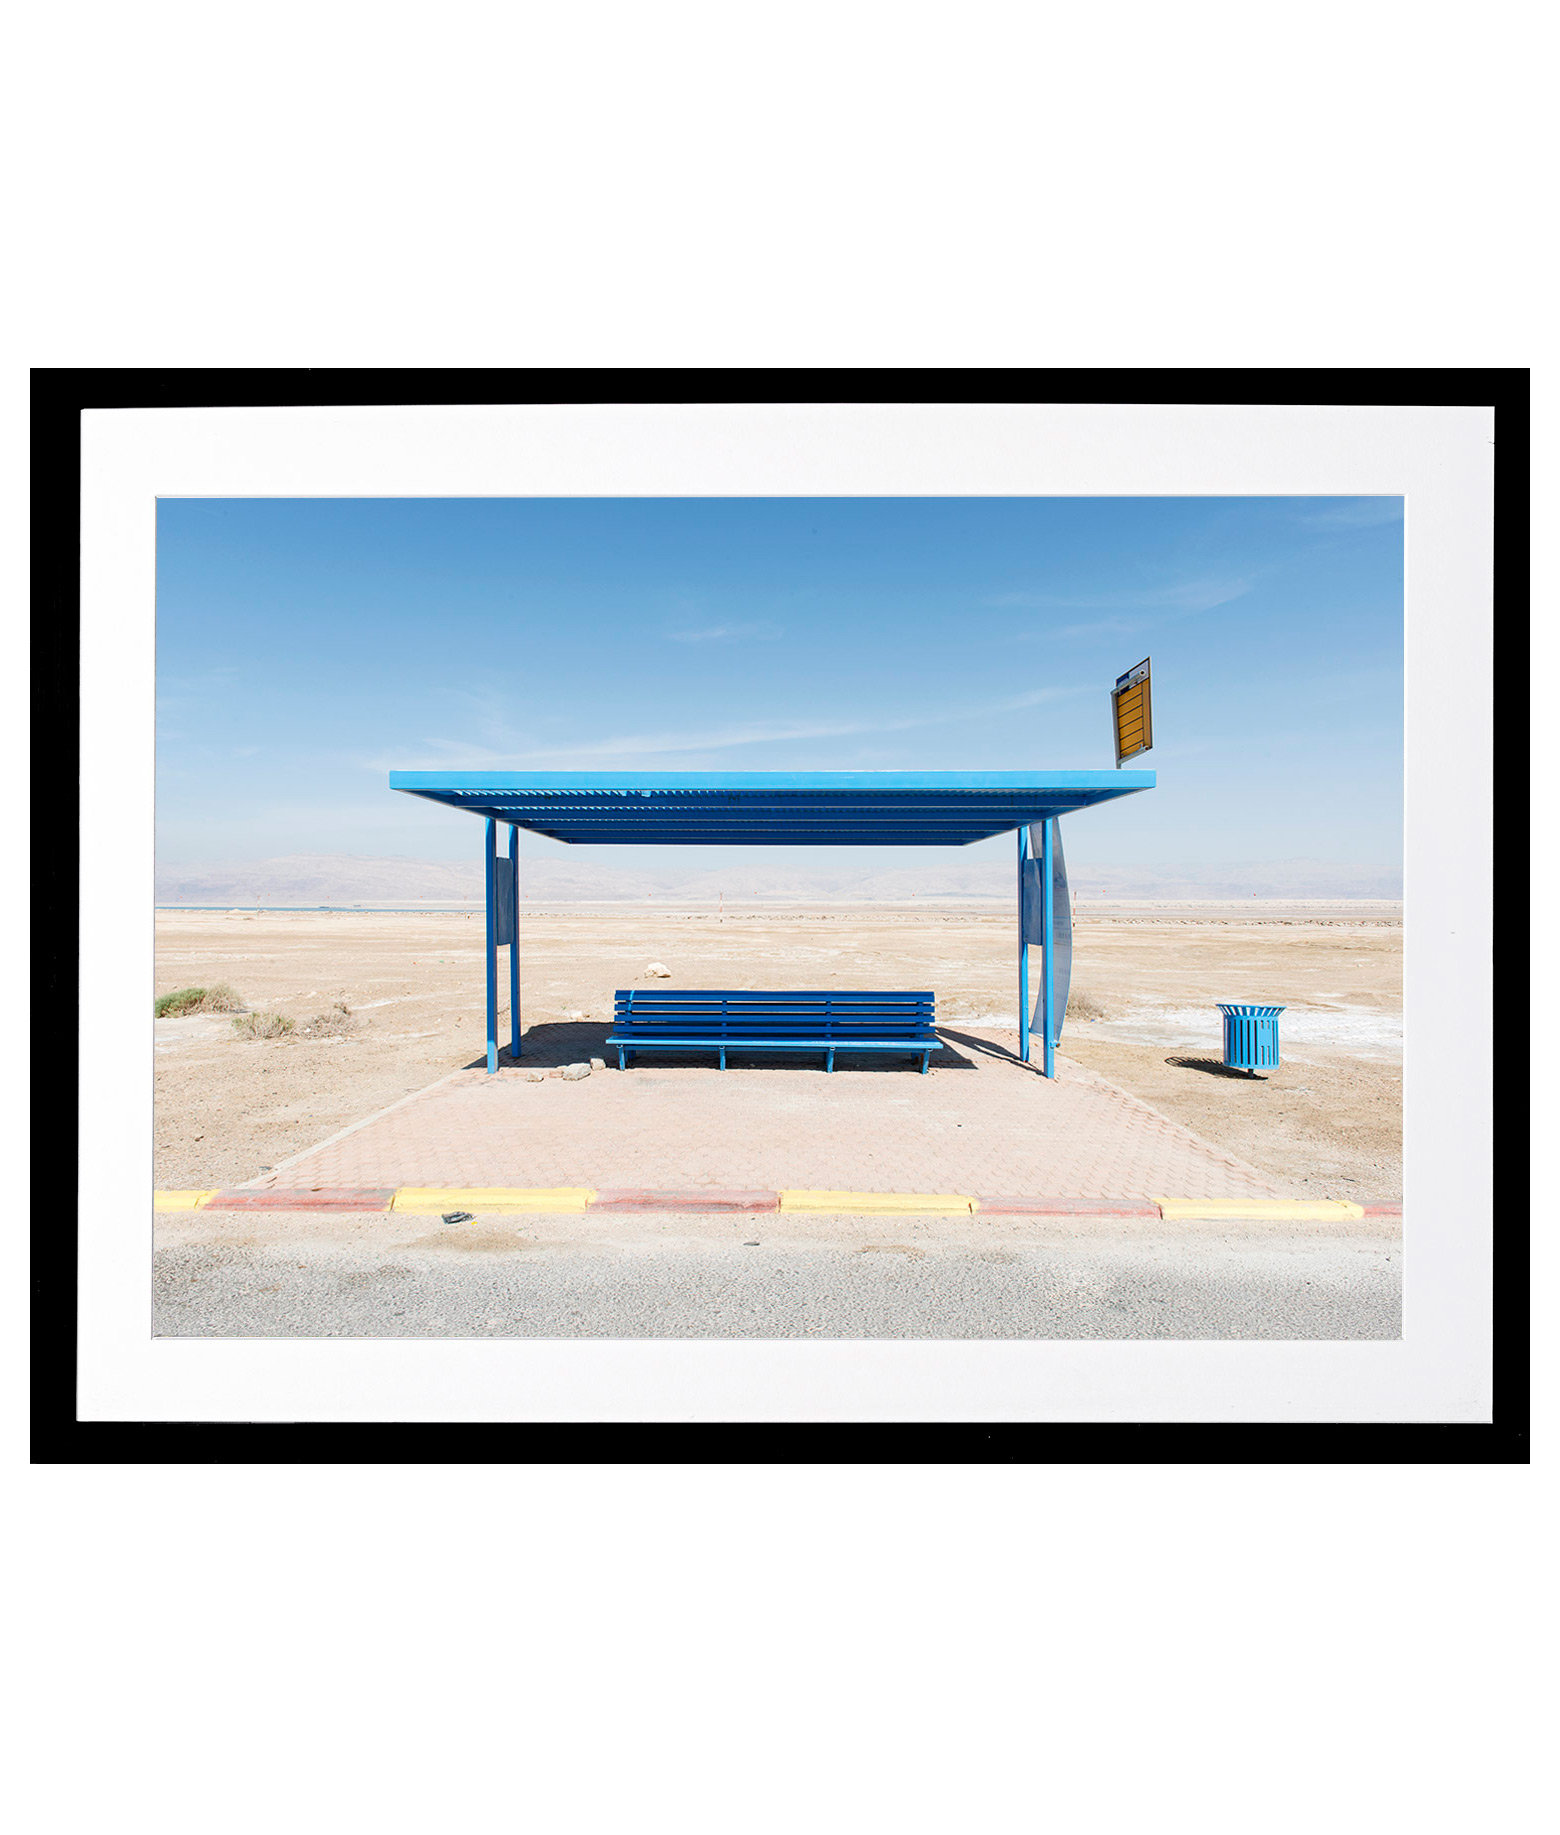 Bäder Modern Claudio Bader Dead Sea Station Contemporary Photography Framed Print